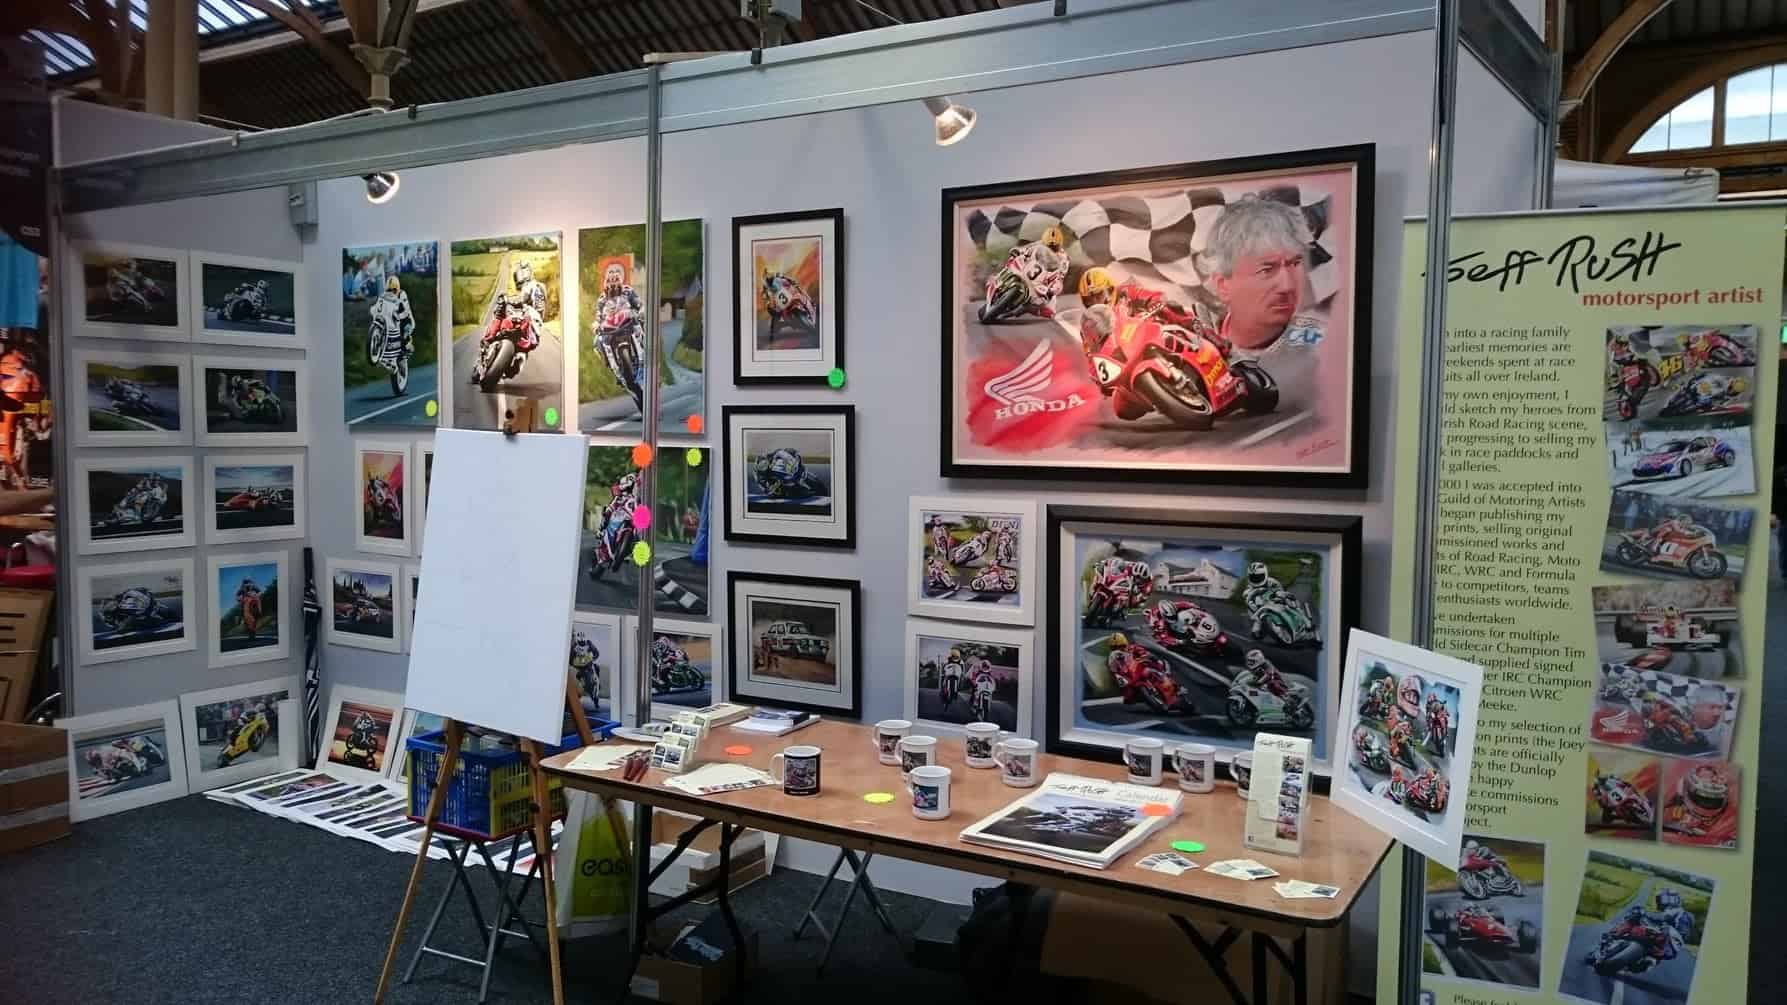 Jeff Rush Motorsport Artworx Artist Shop